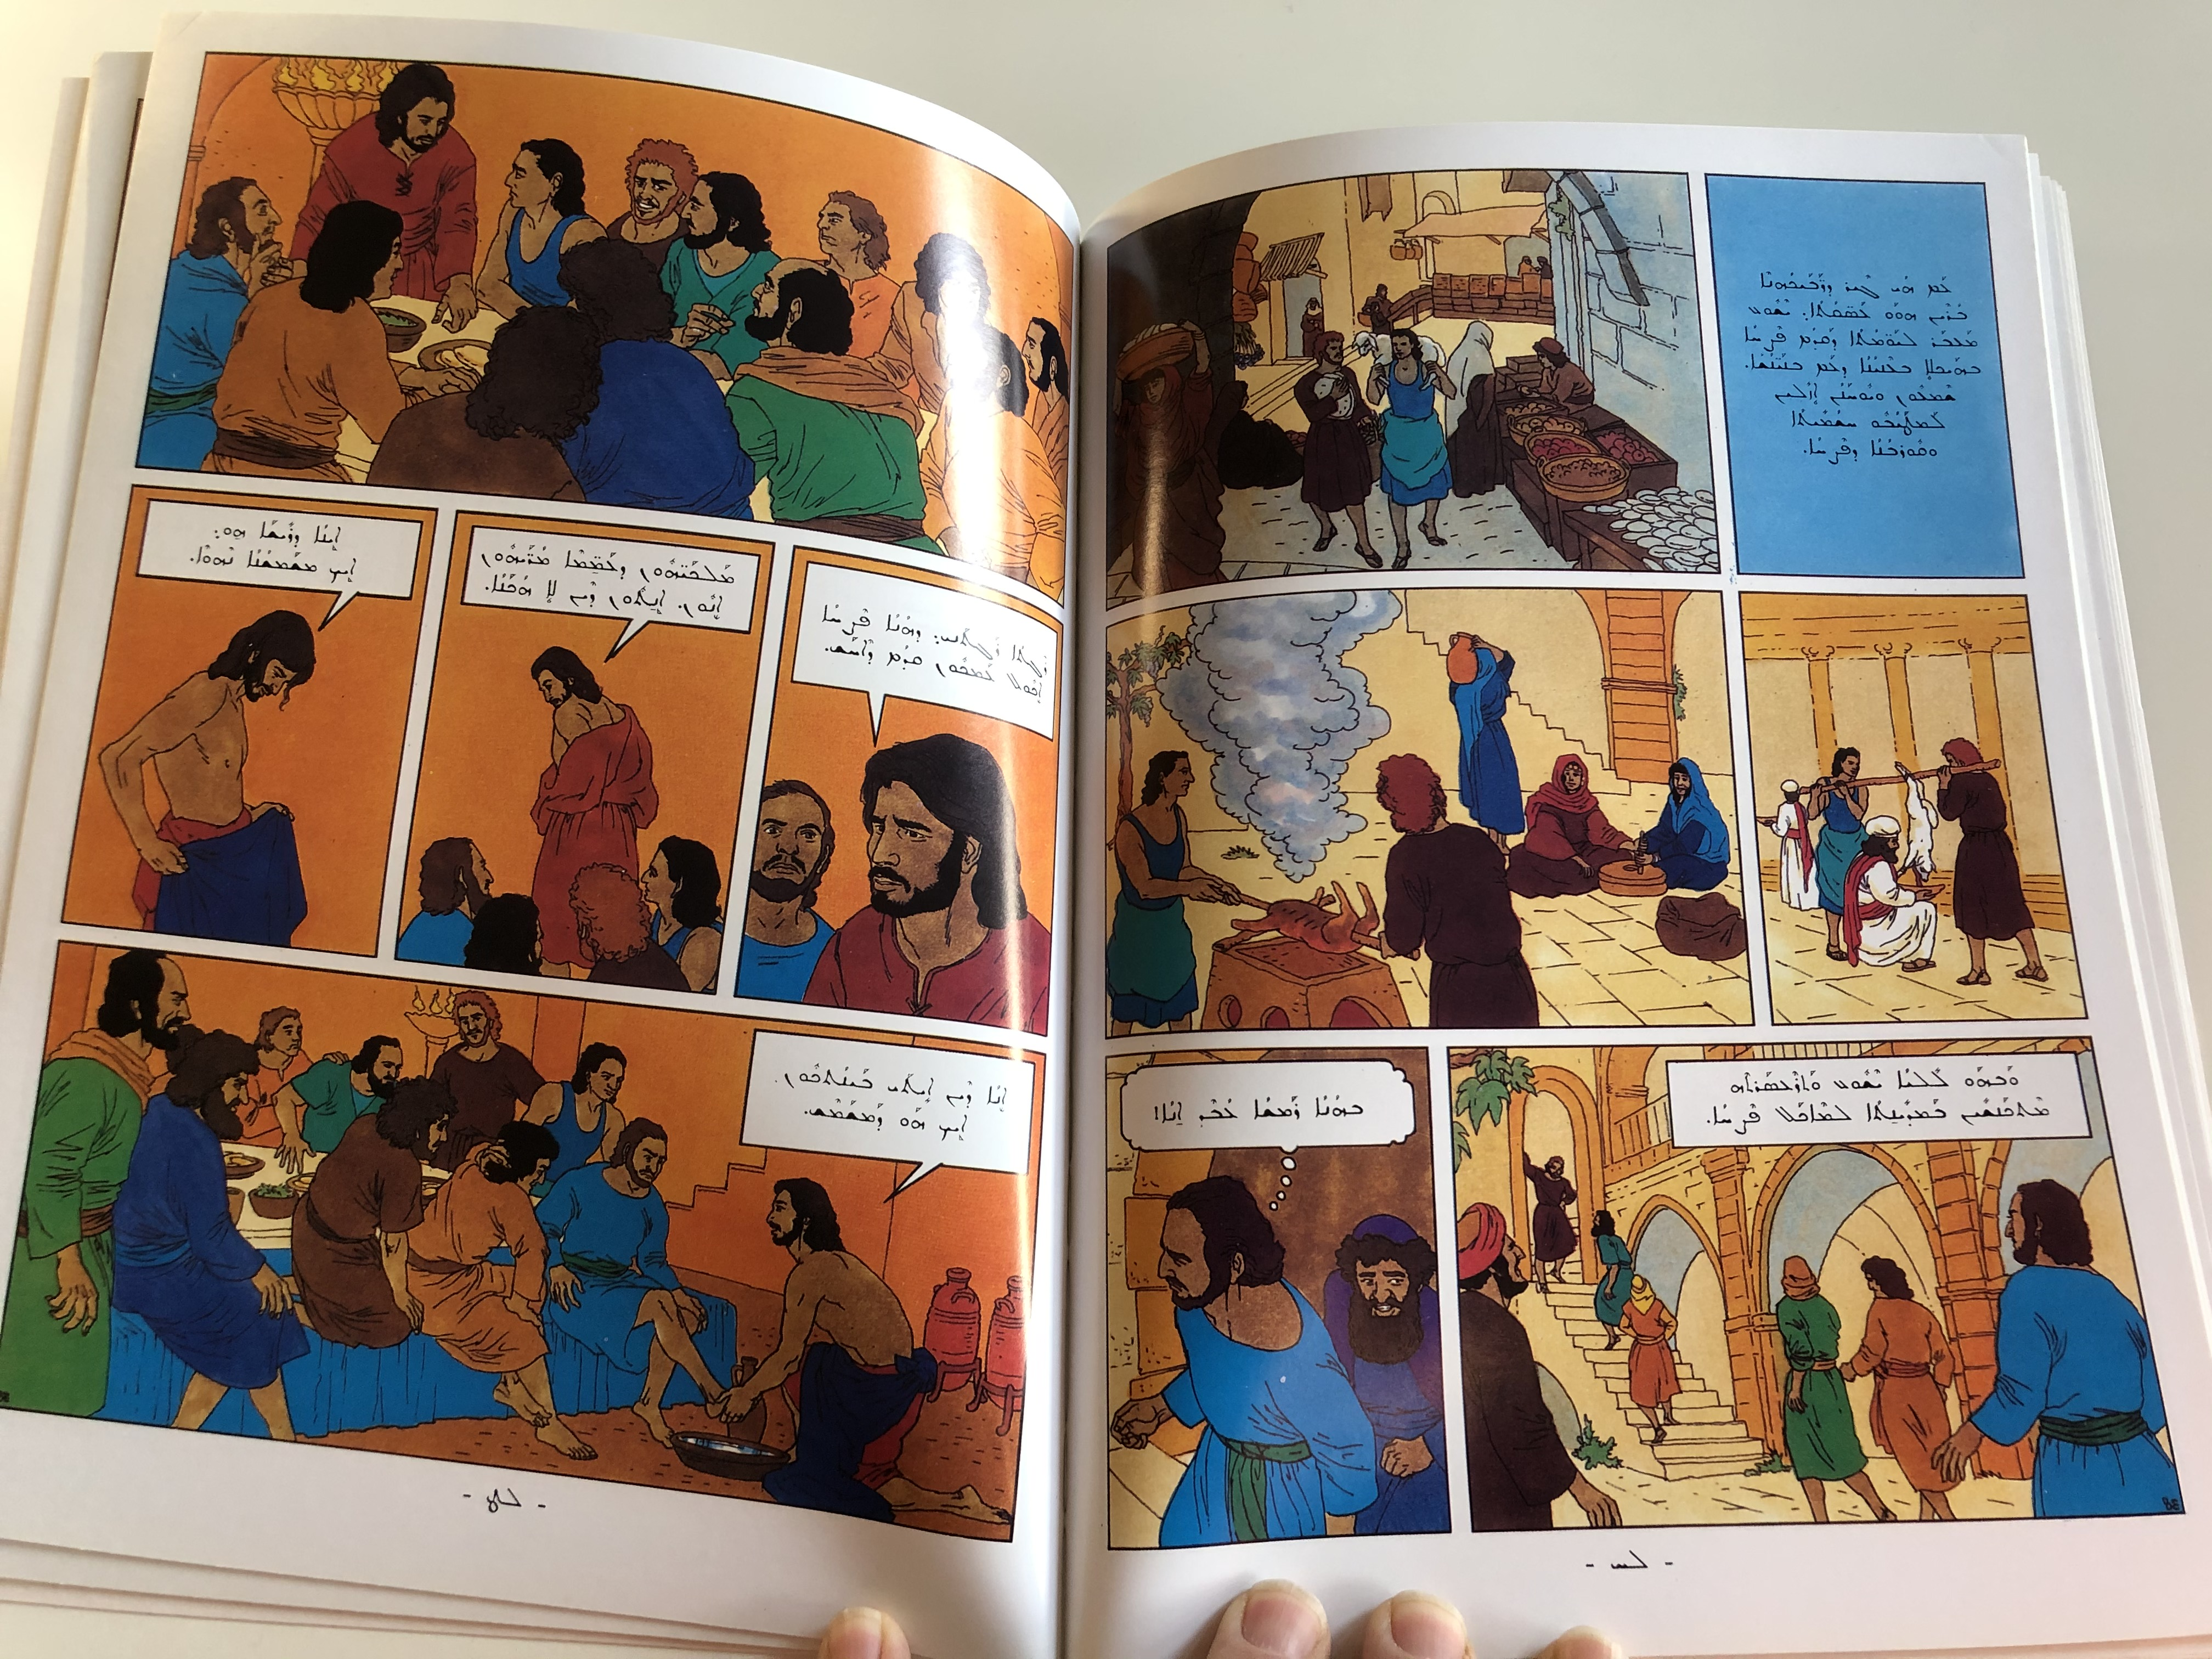 syriac-picture-new-testament-paperback-by-turkish-bible-society-8.jpg